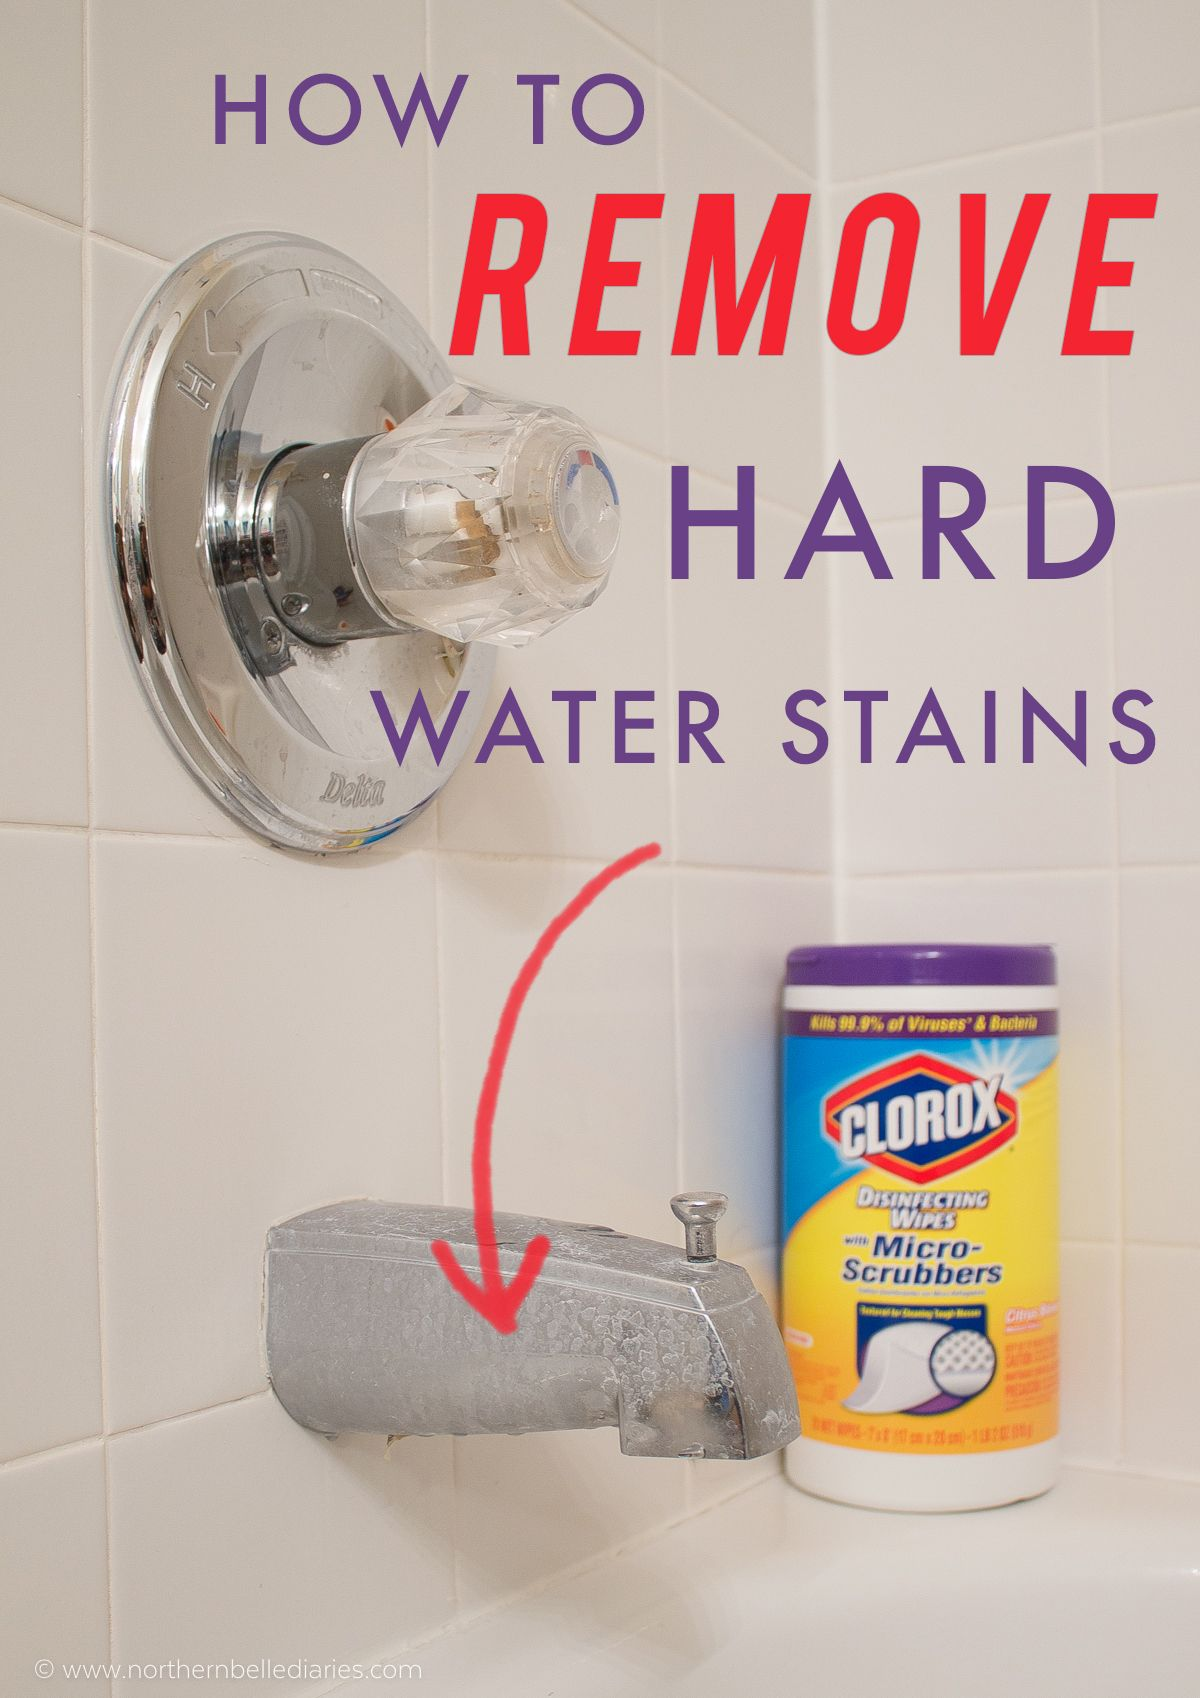 tub hardwaterstains living from how removing stains hard water remove to smpliving